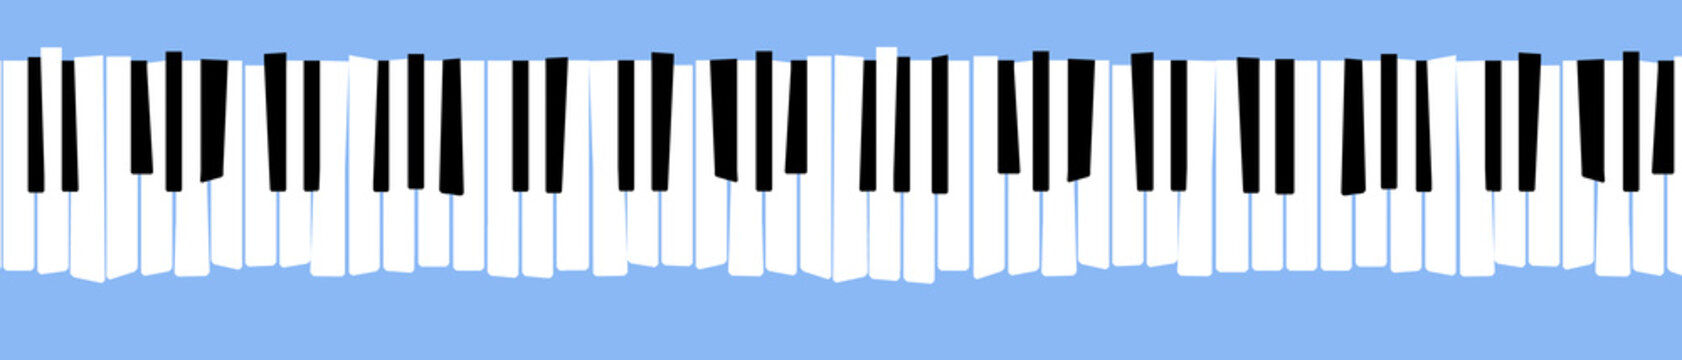 Here is a stylized, distorted retro piano keyboard.